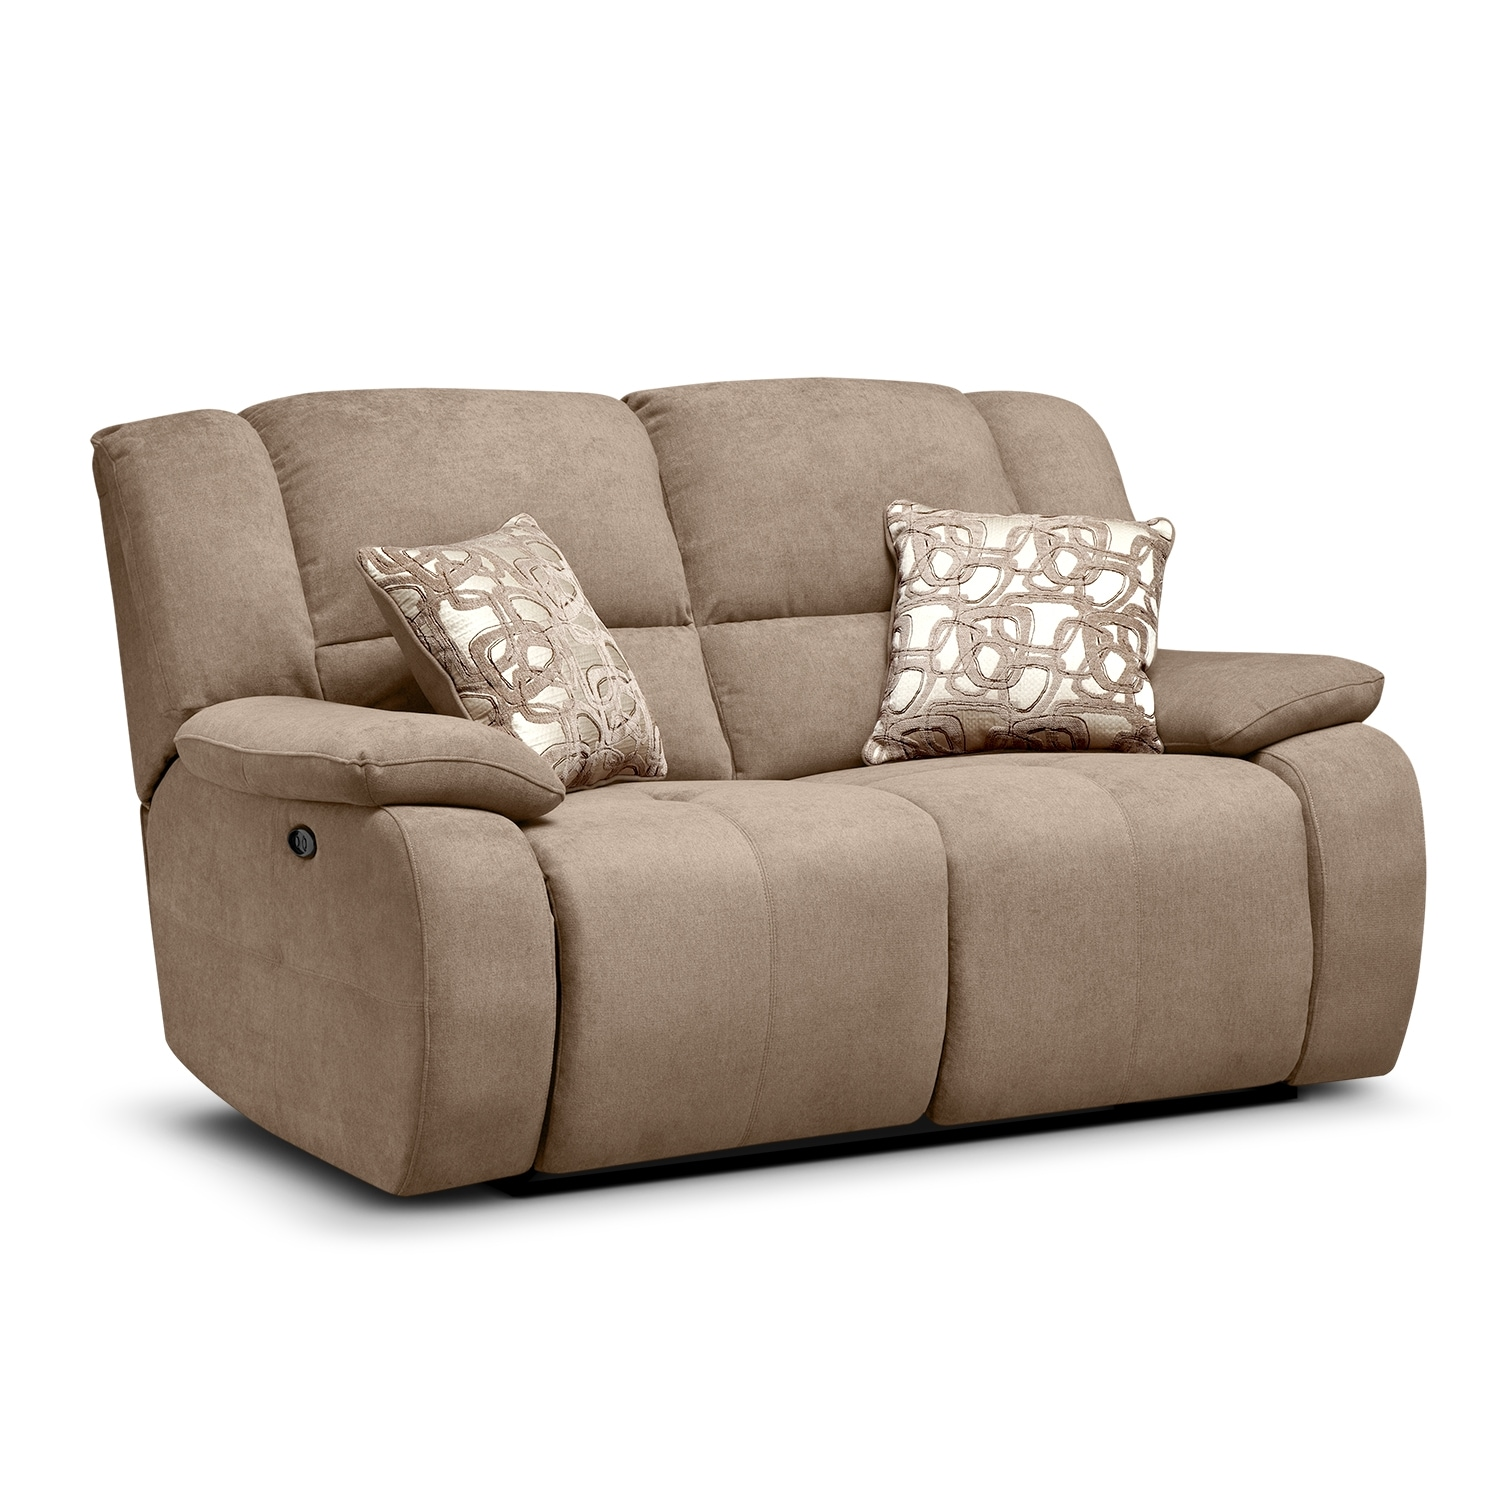 Value city furniture Power loveseat recliner